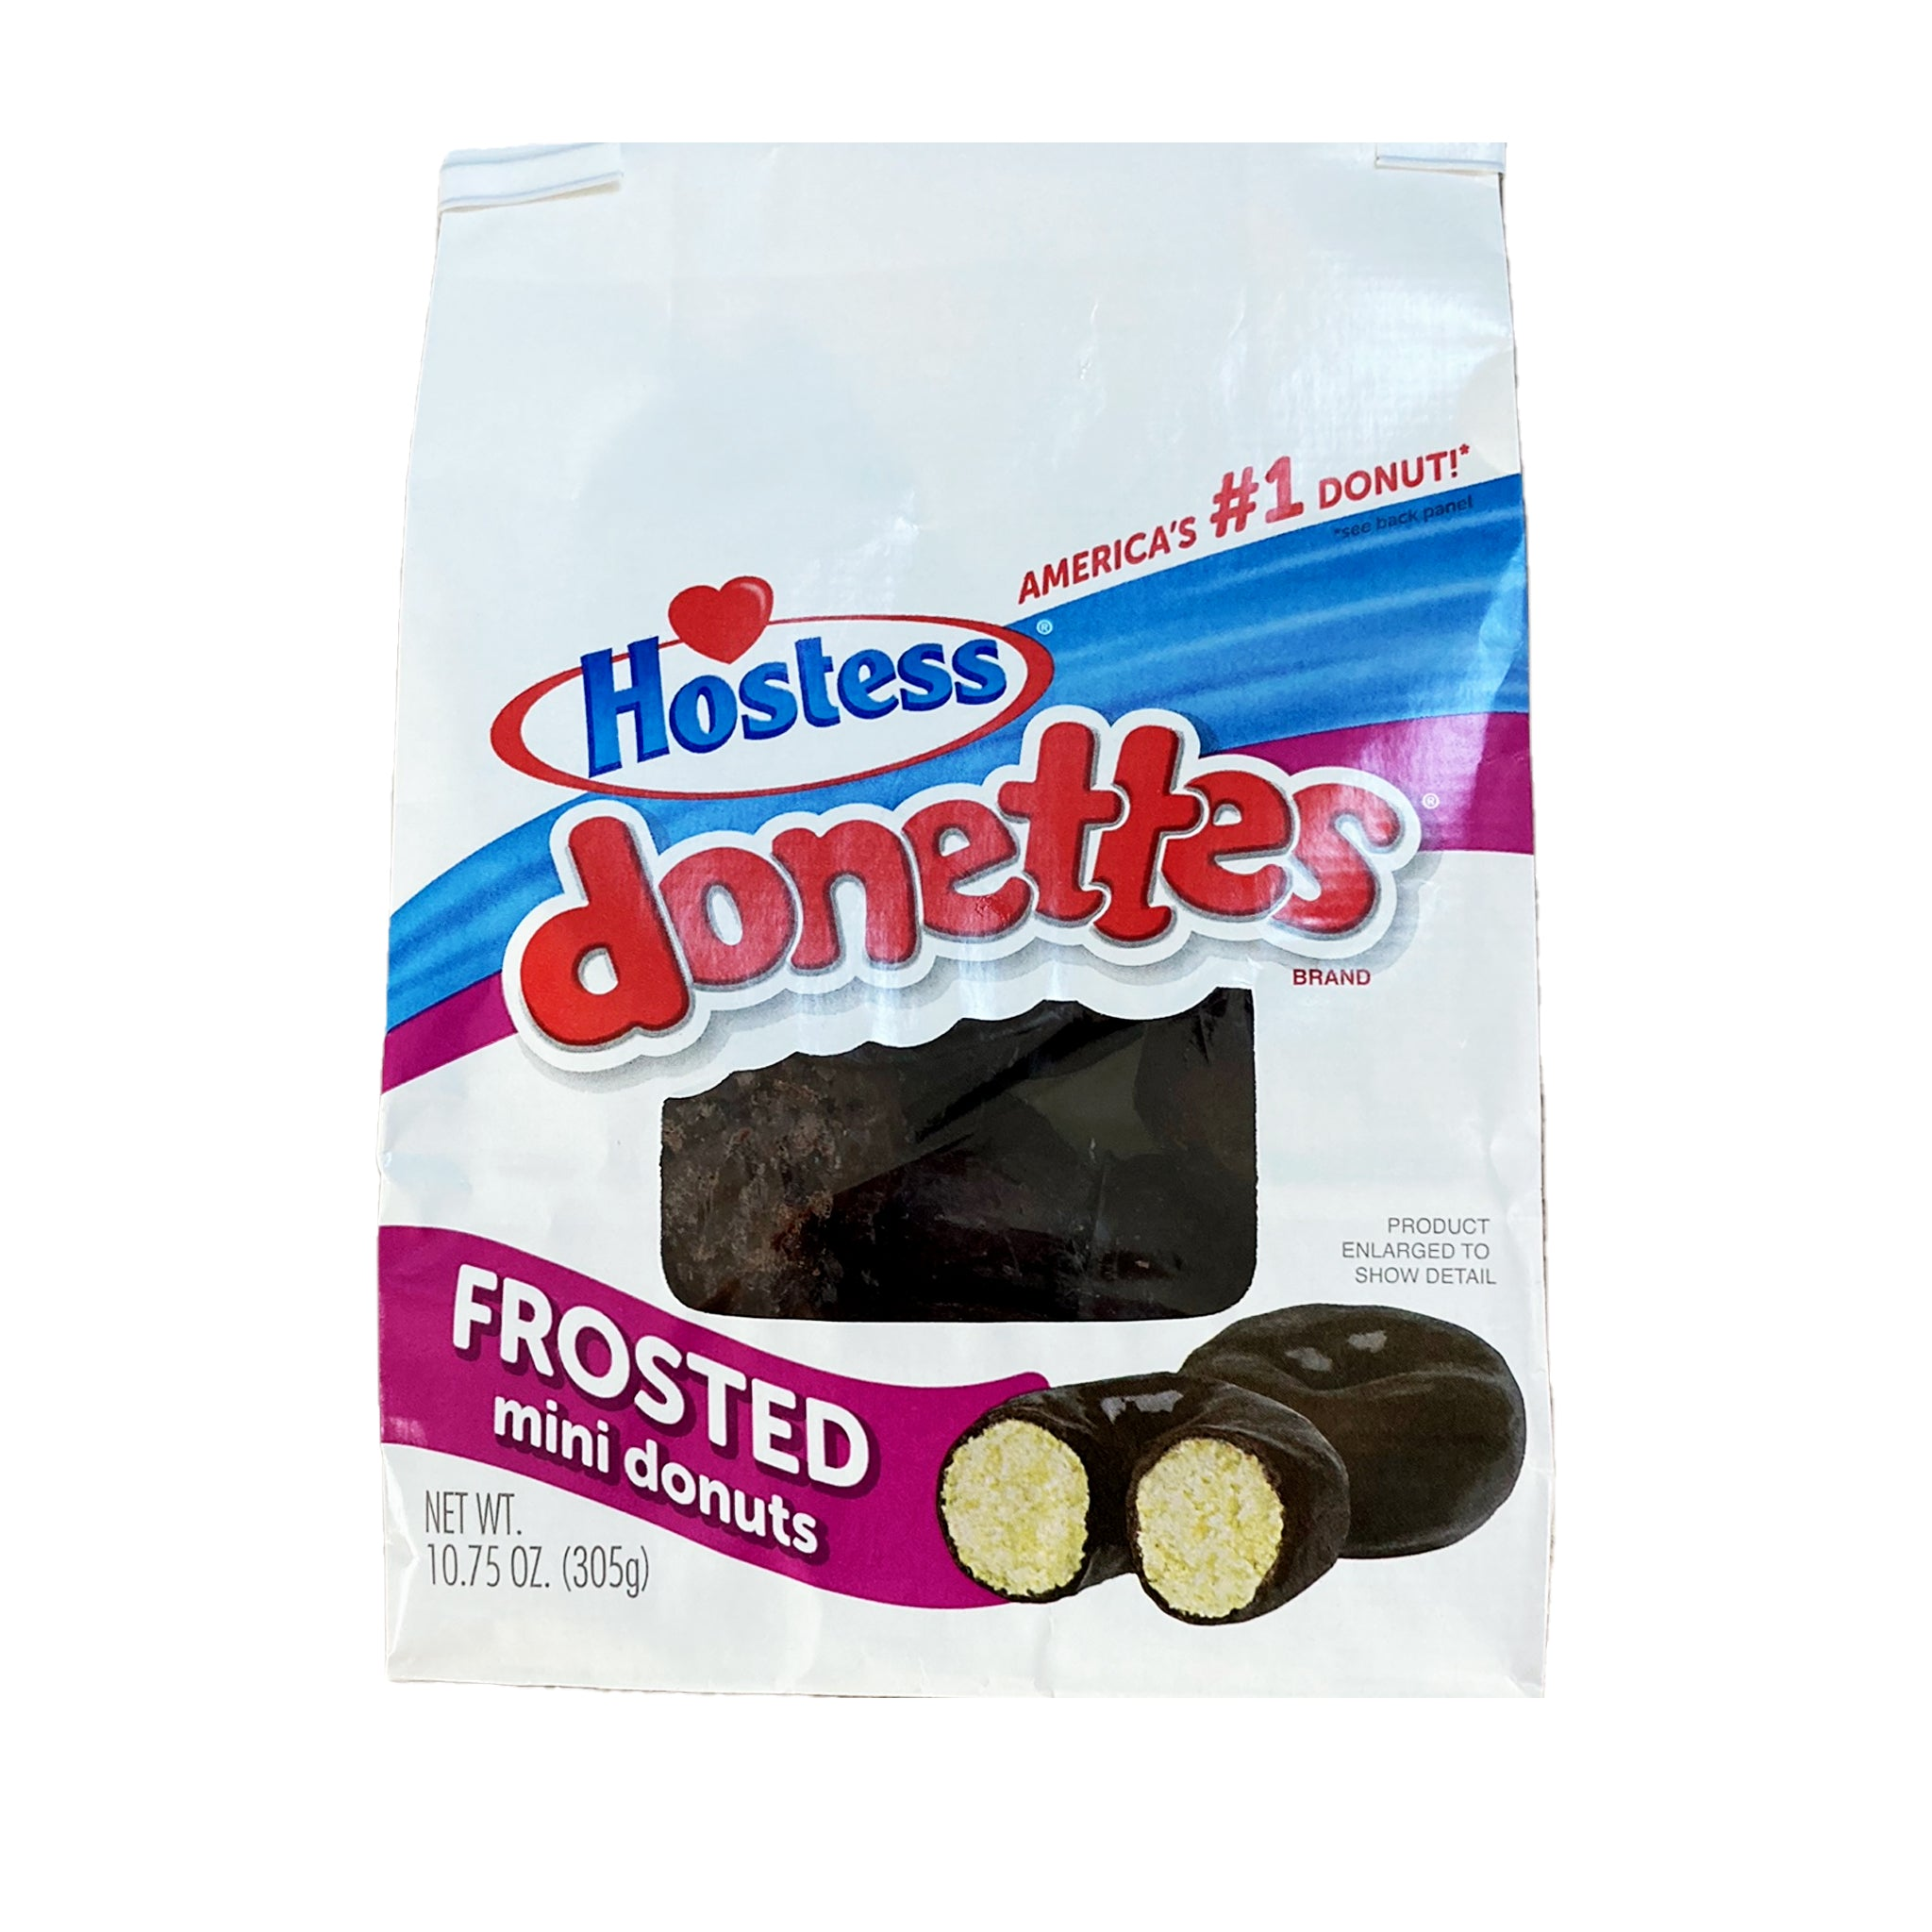 Hostess Donnettes frosted mini מיני דונאטס הוסטס טעימים